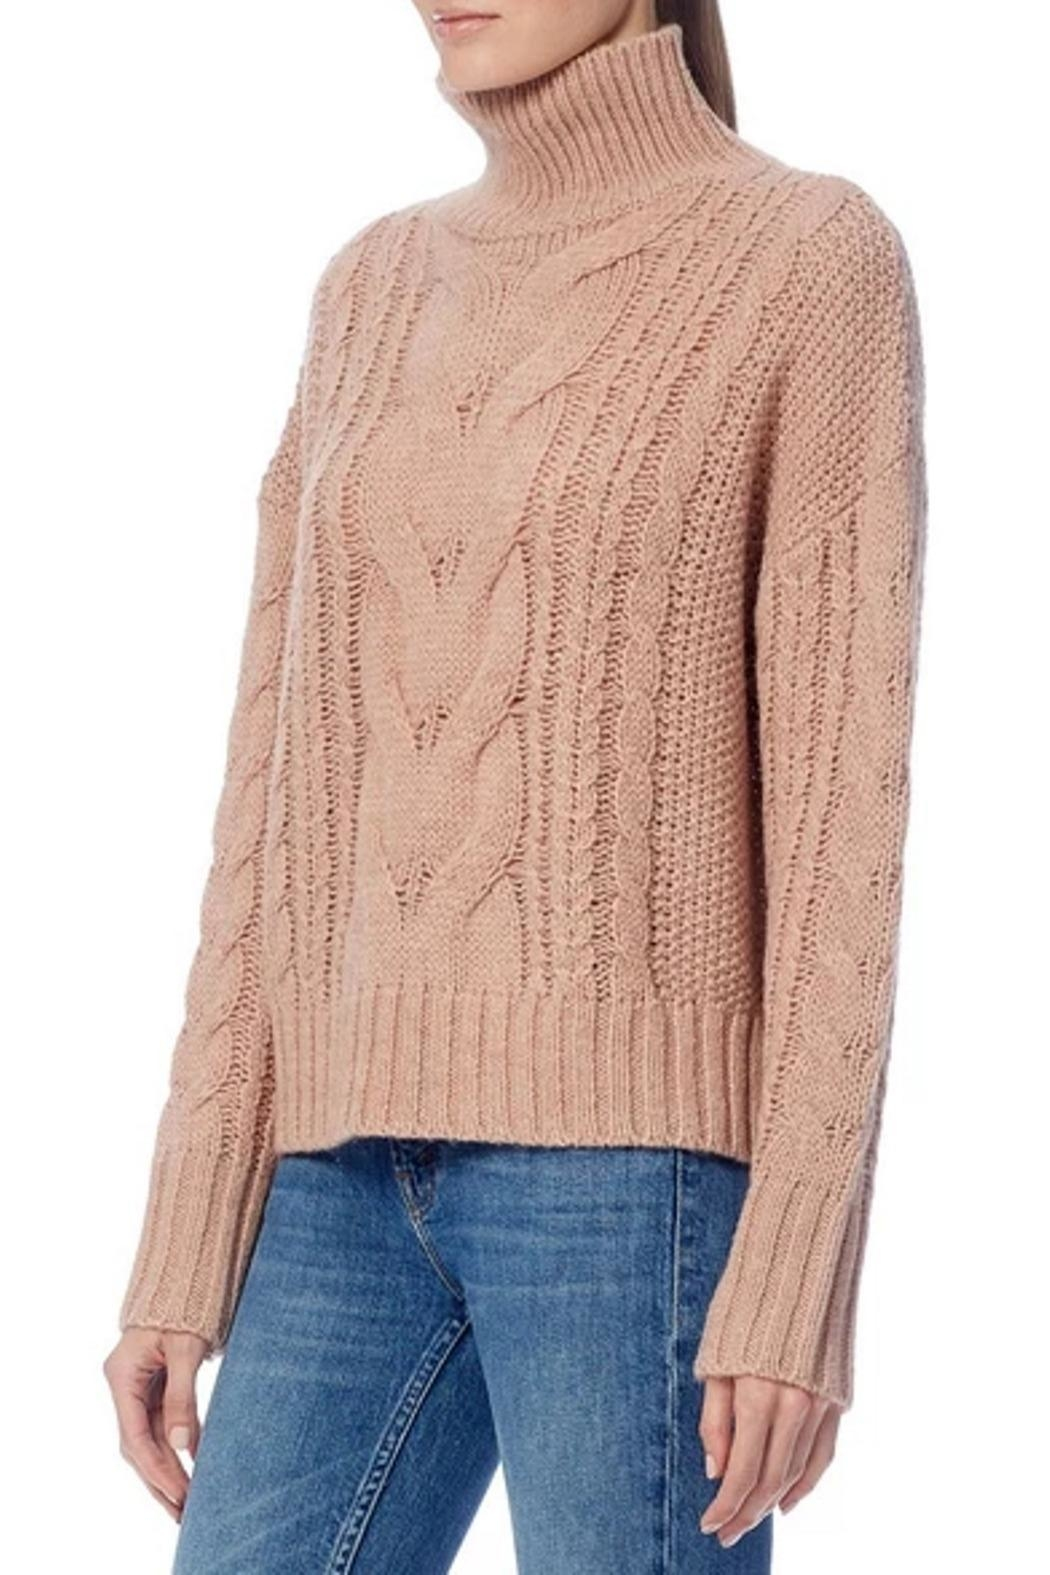 360 Cashmere Alexia Sweater - Side Cropped Image